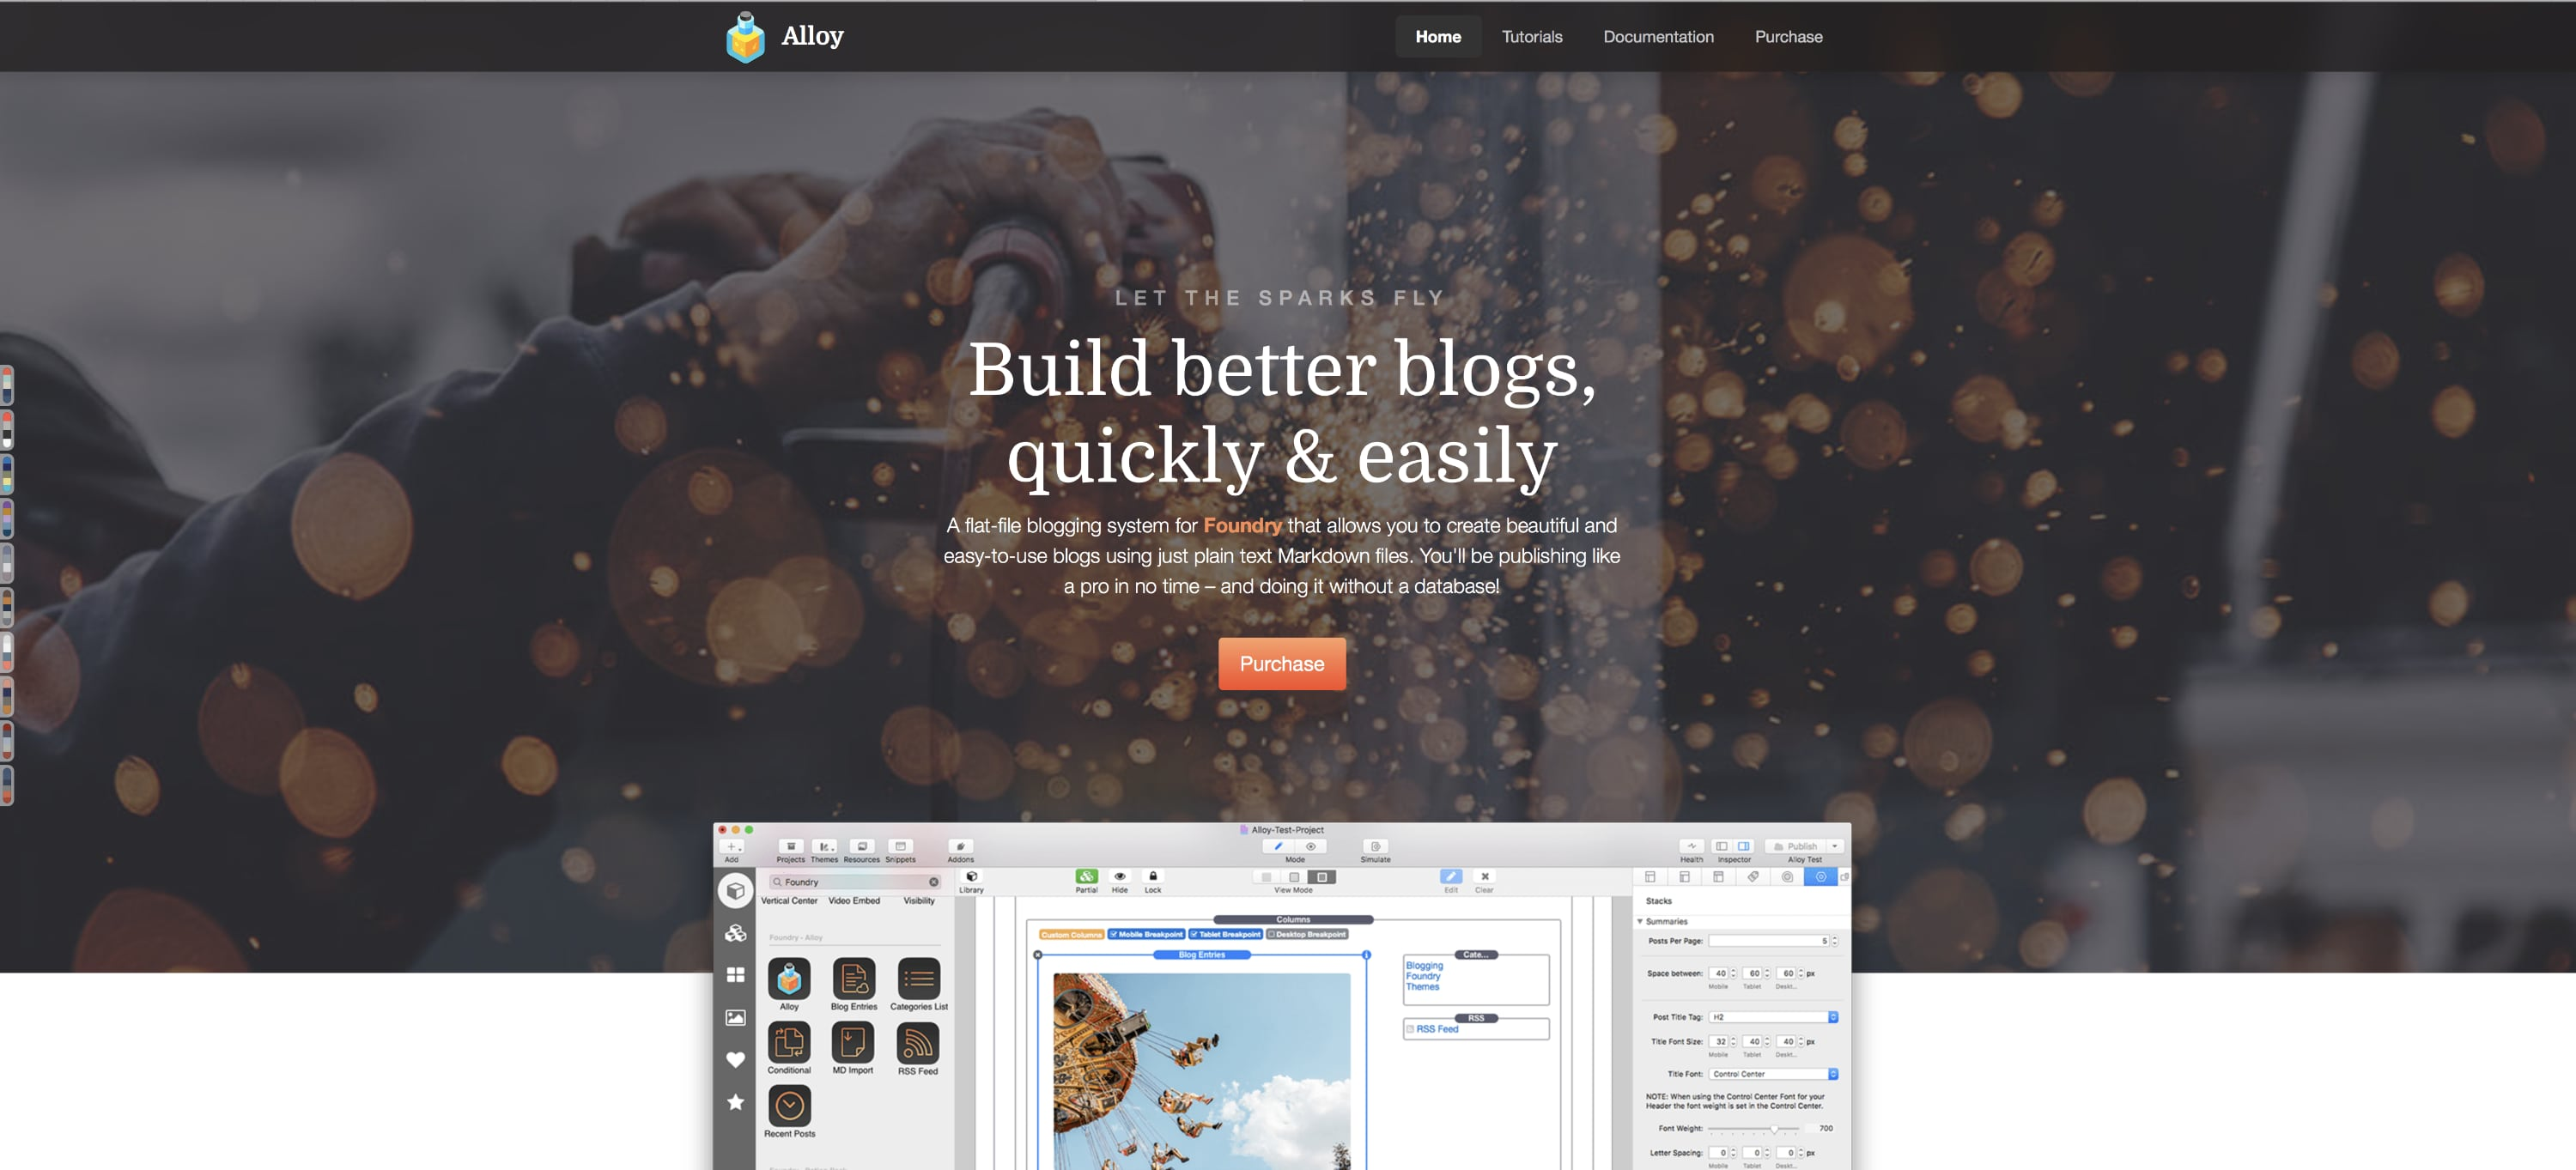 Alloy Web Page